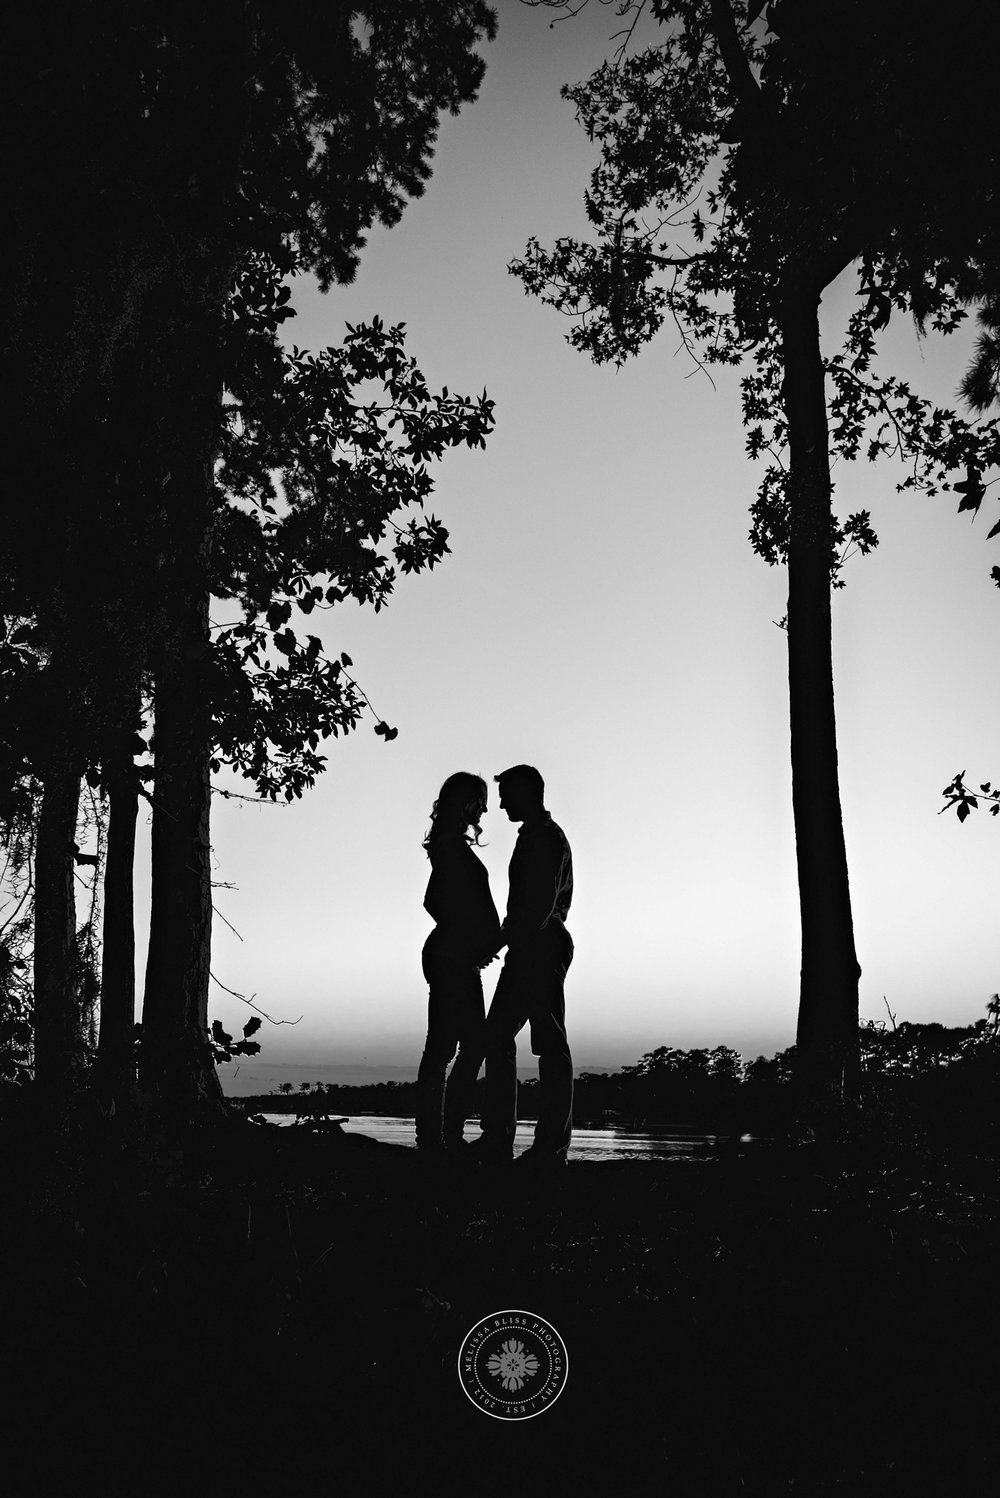 black-and-white-maternity-session-silhouette-of-couple-in-trees-va-beach-photographer